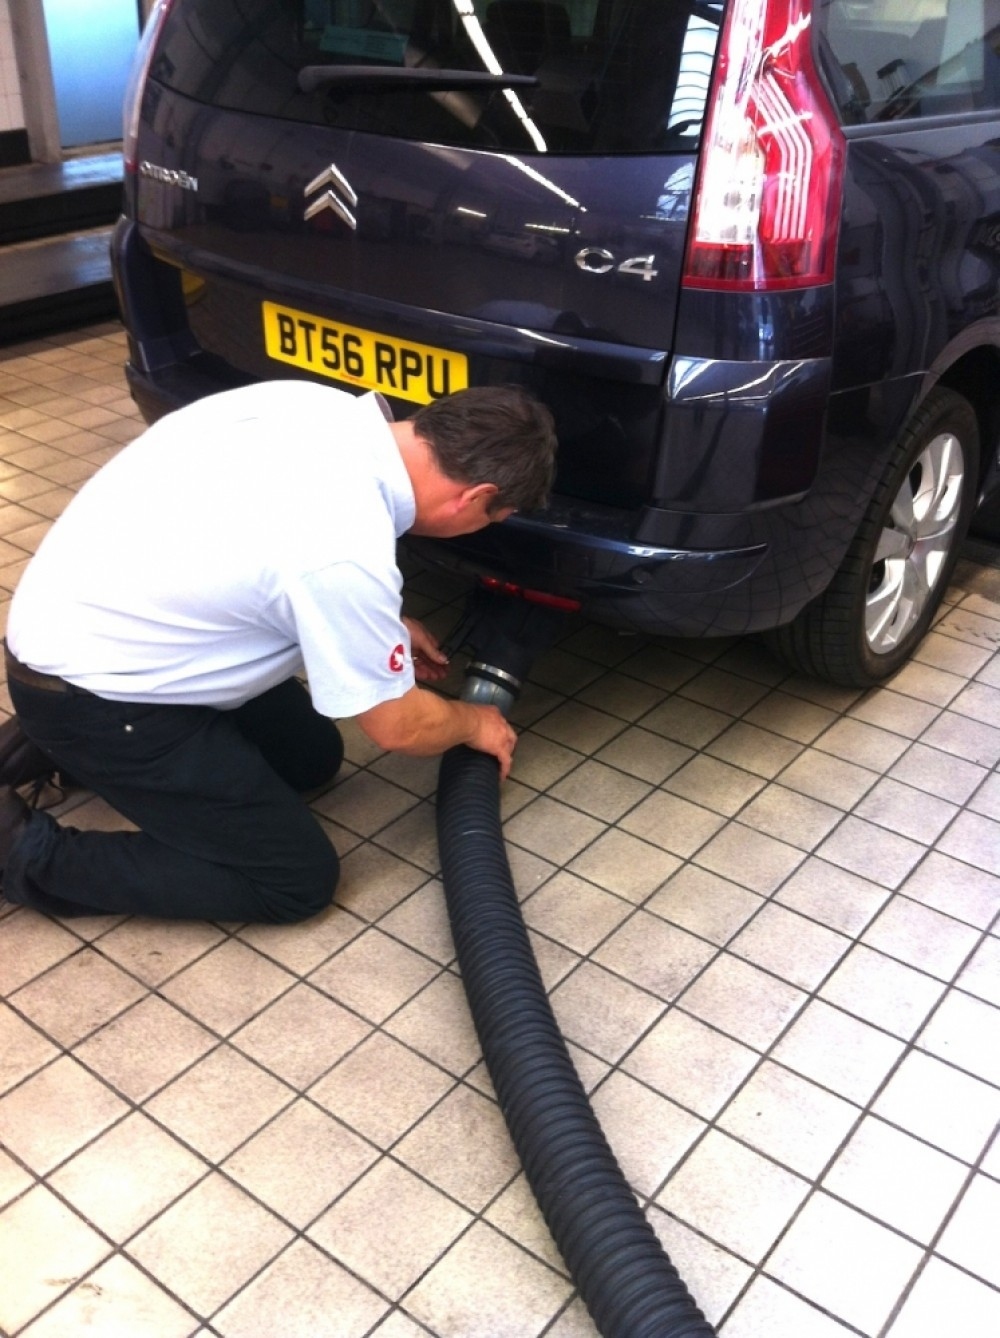 exhaust-extraction-attaching-hose-